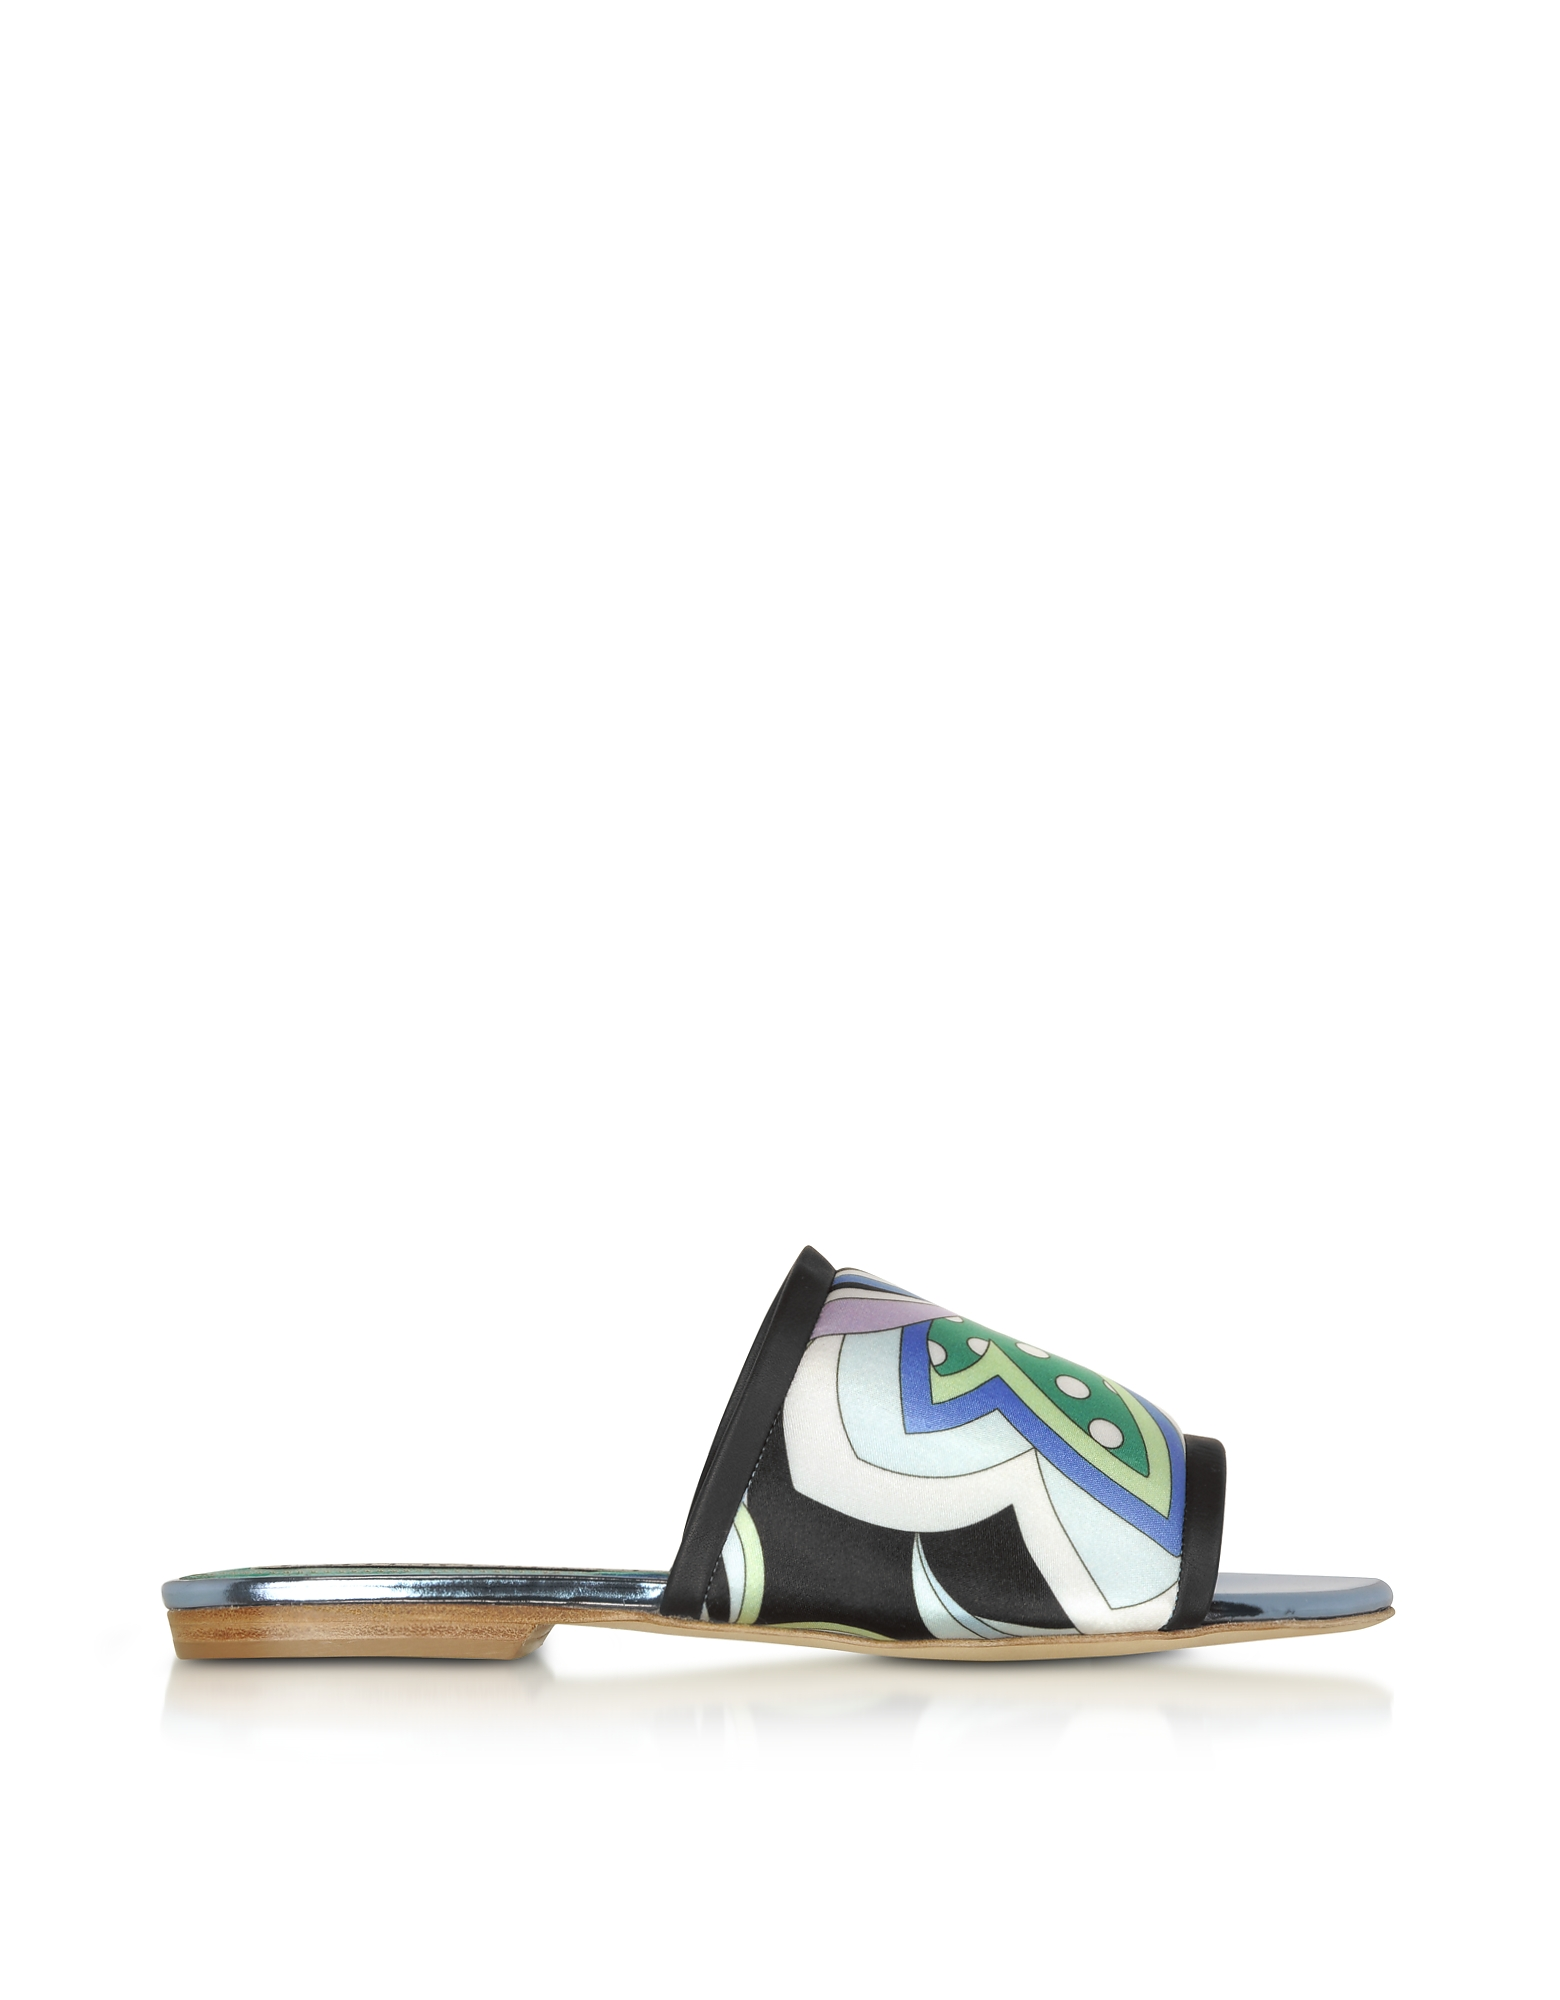 Emilio Pucci Shoes, Cornflower Printed Canvas and Leather Flat Slide Sandals